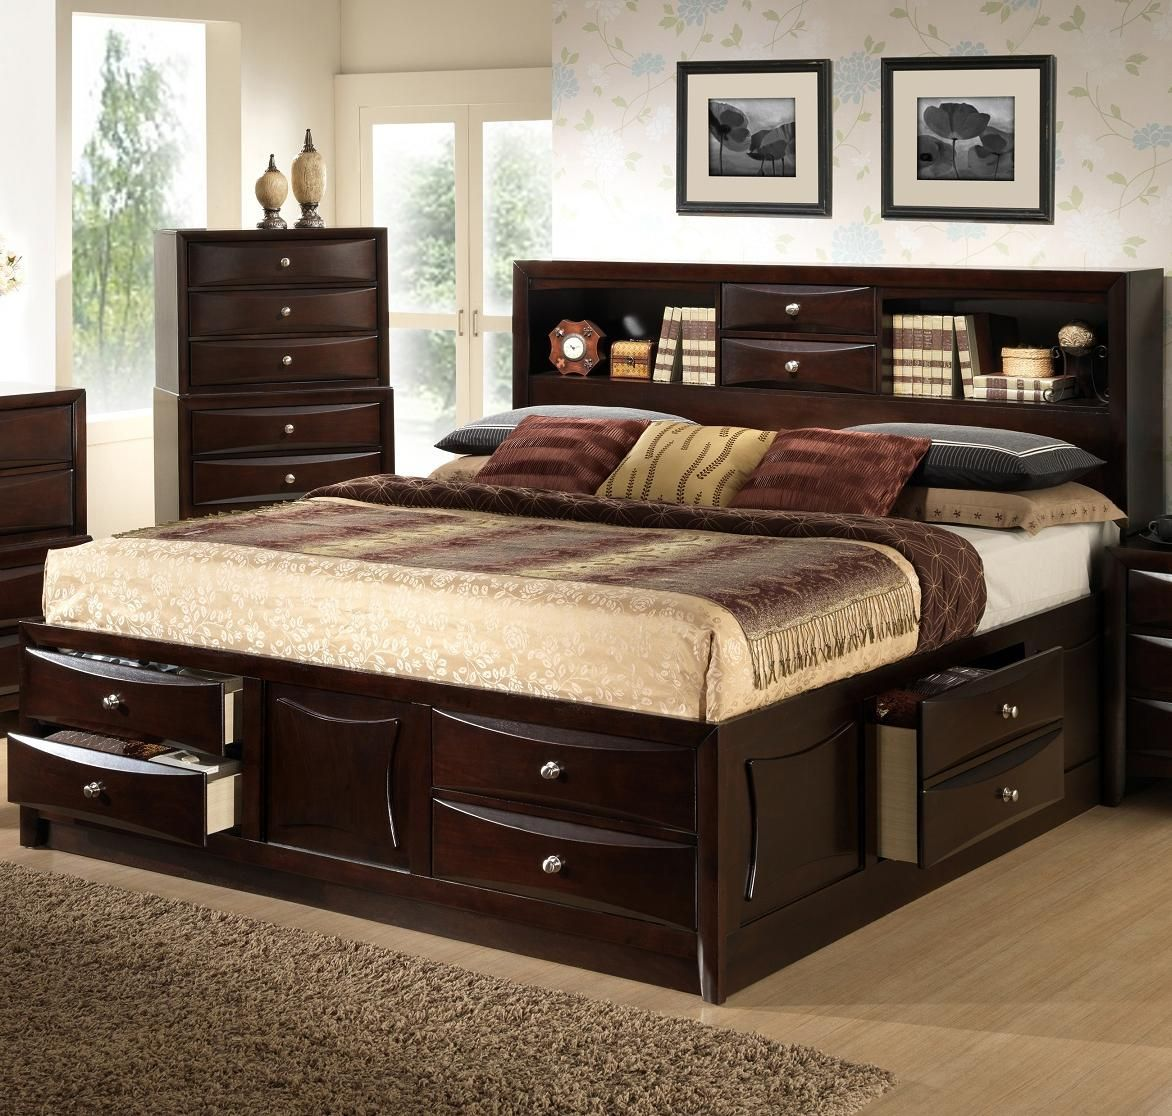 C0172 queen storage bed by lifestyle bedroom ideas - Bedroom furniture bookcase headboard ...